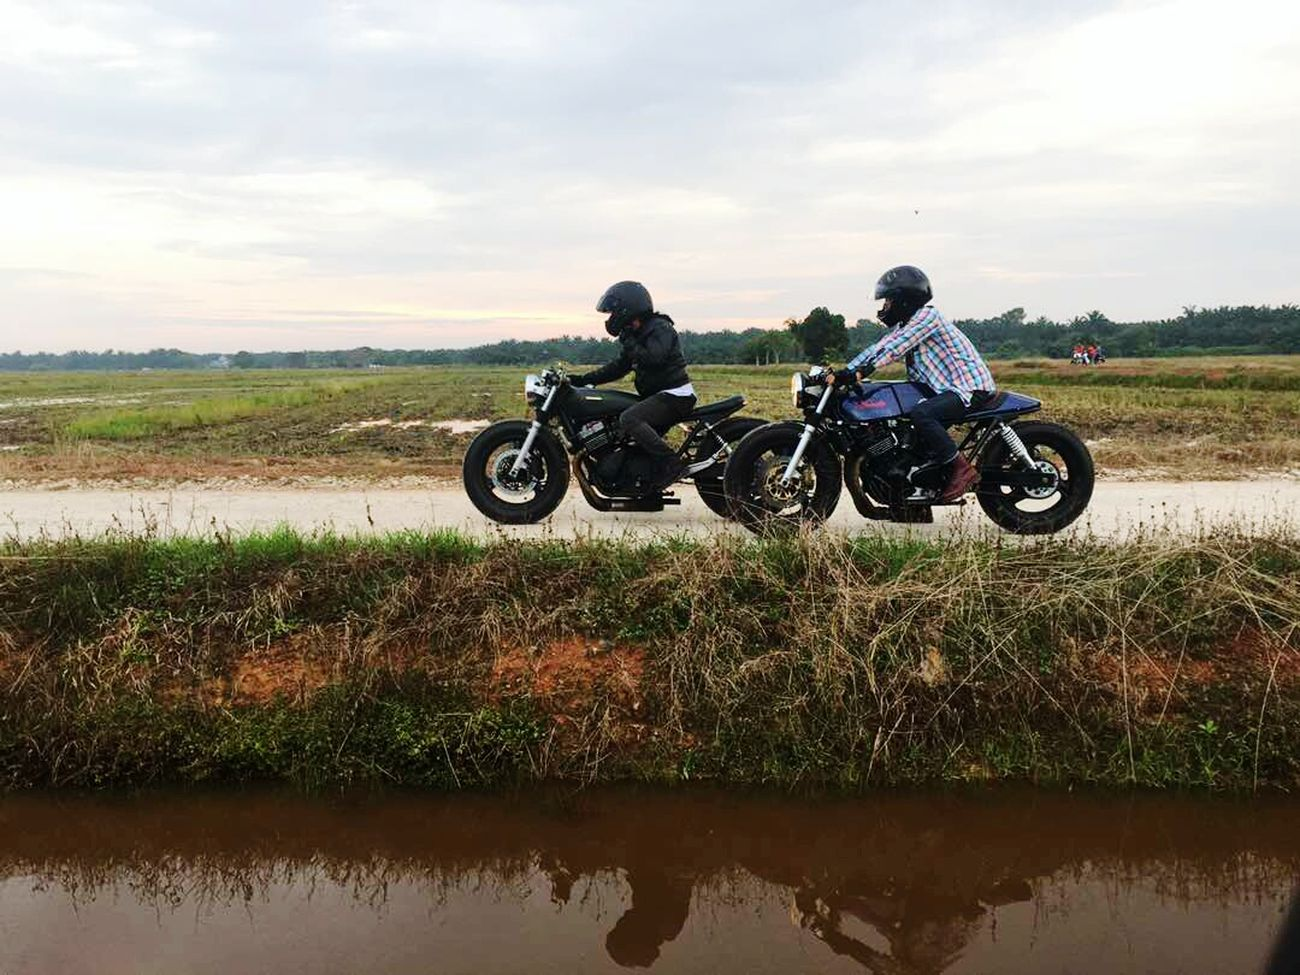 Caferacersociety Gentlemansride Caferacerdreams Motorcycle Two People Adventure Adults Only Headwear Crash Helmet Adult Only Men People Togetherness Men Day Full Length Sports Clothing Rural Scene Landscape Sky Friendship Outdoors Motocross Caferacer Caferacerculture